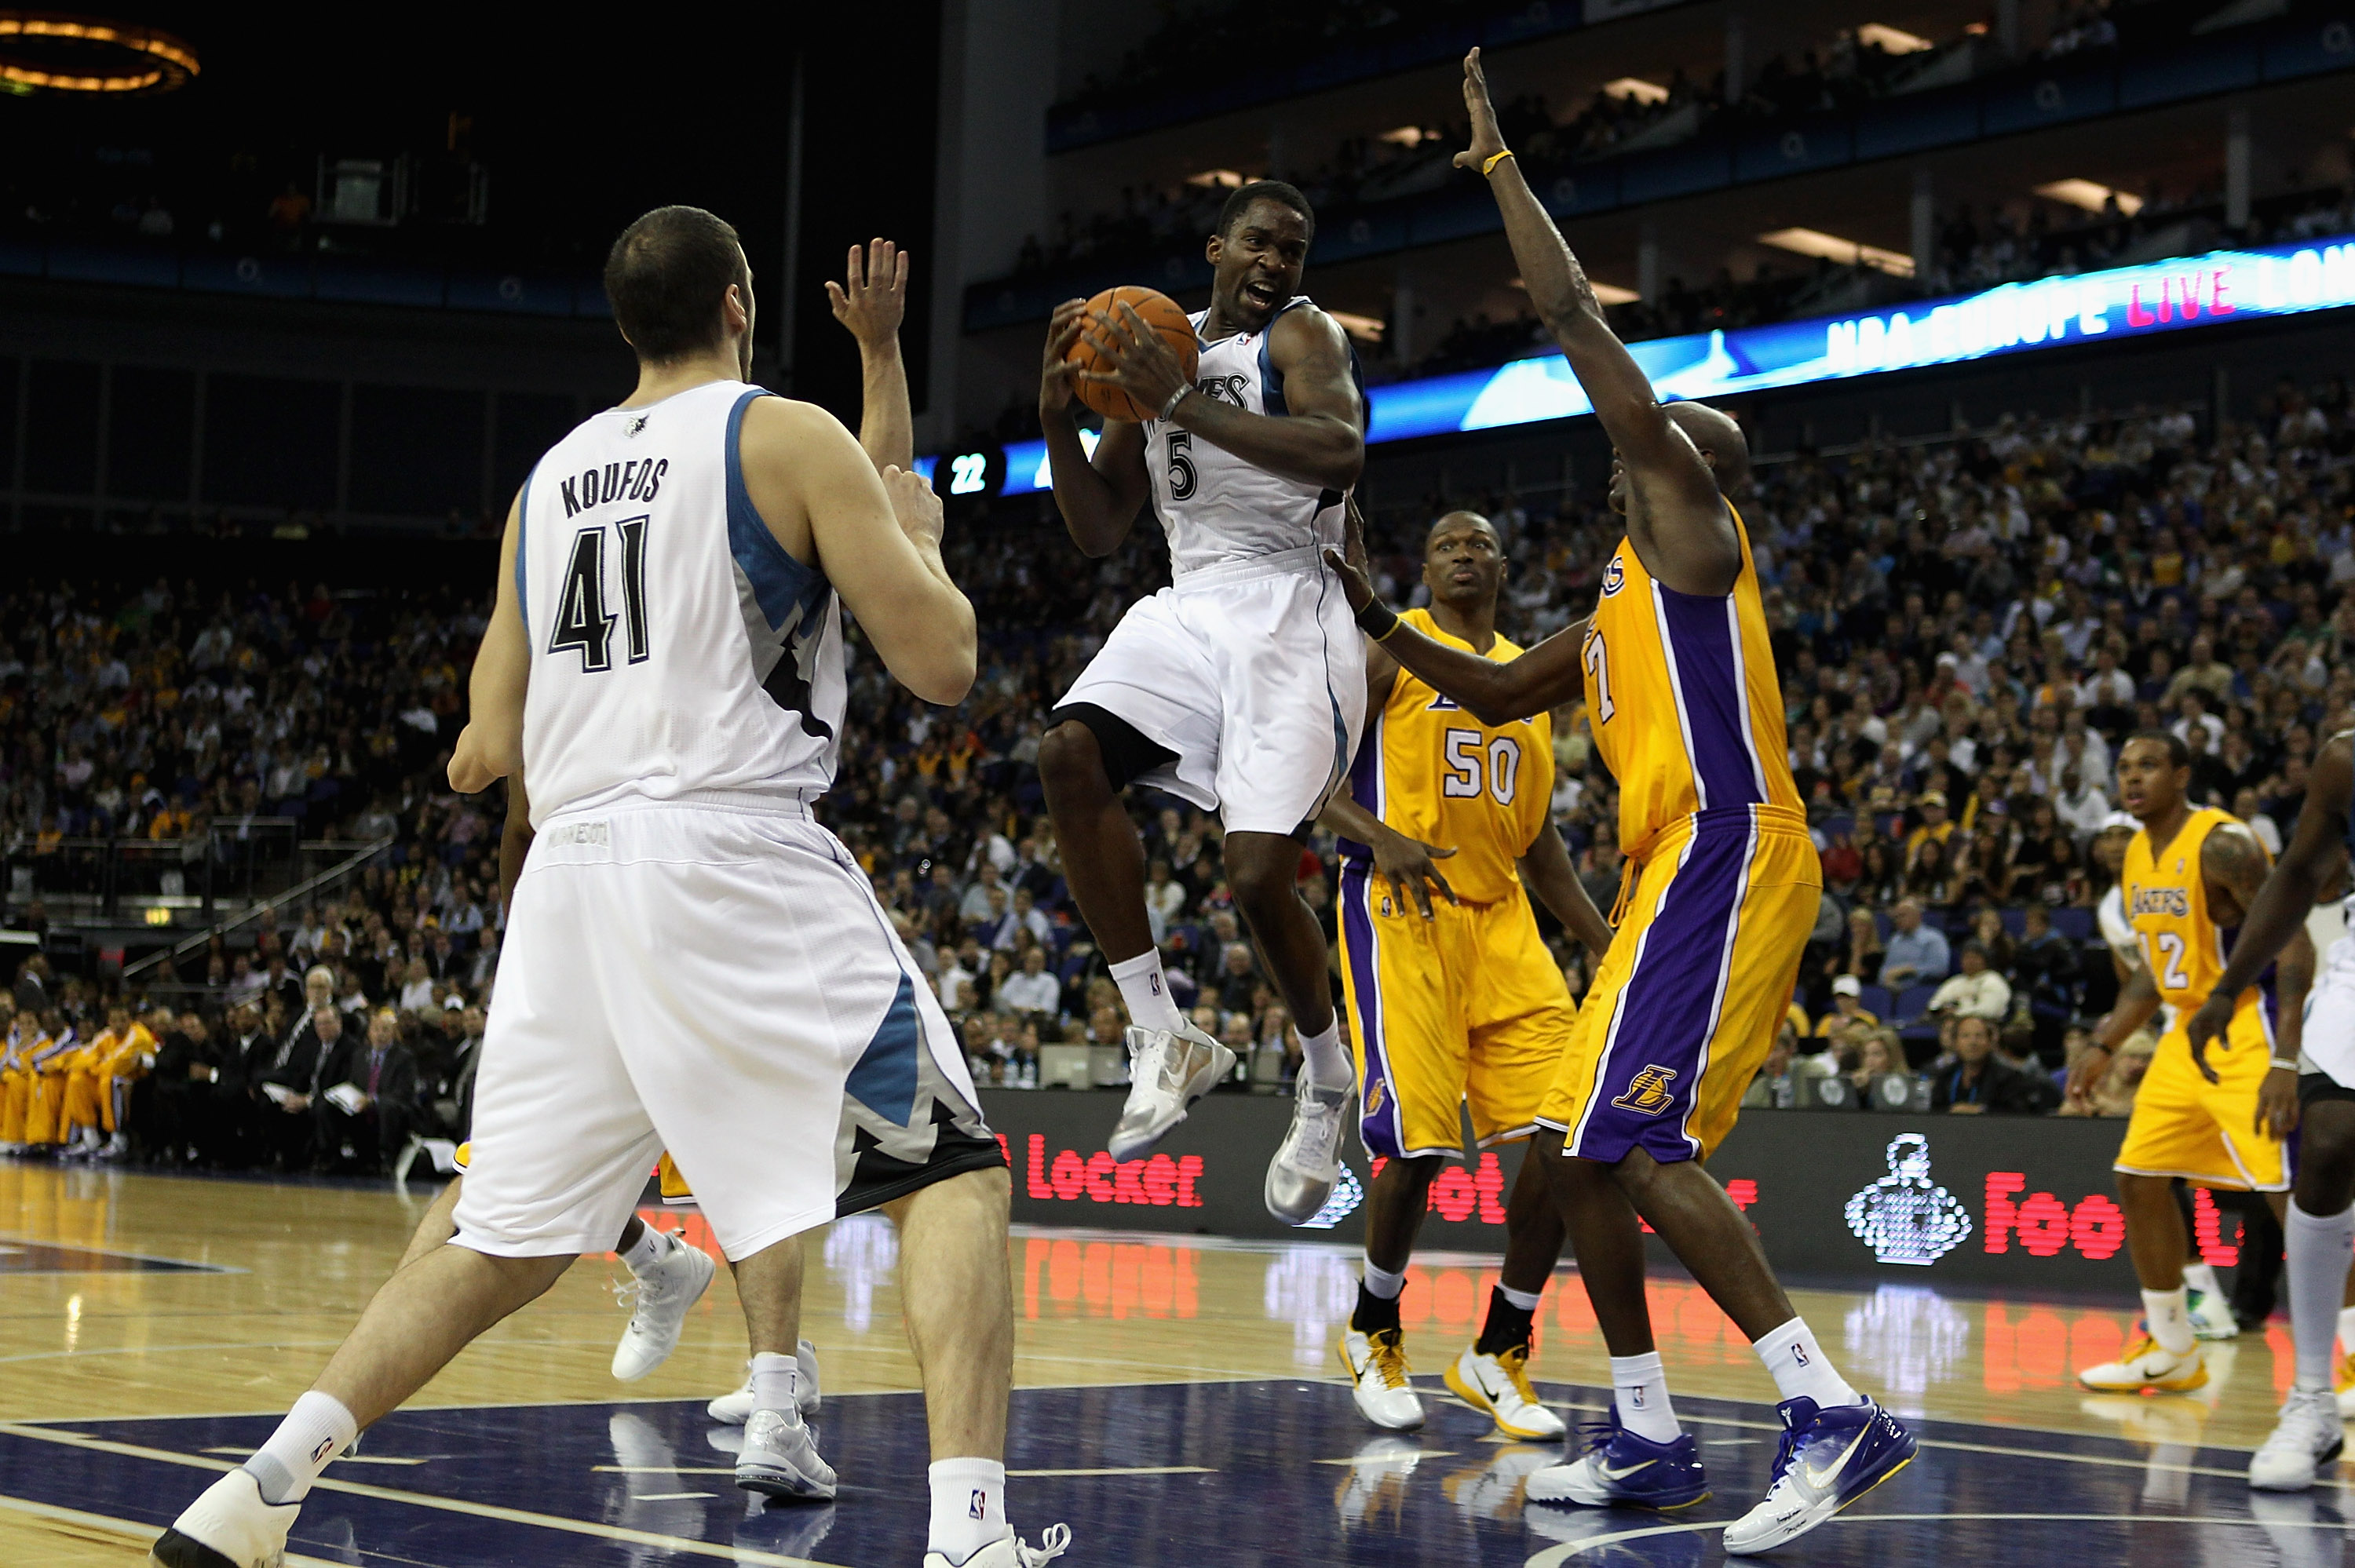 LONDON, ENGLAND - OCTOBER 04:  Martell Webster of the Minnesota Timberwolves (C) in action during the NBA Europe Live match between the Los Angeles Lakers and the Minnesota Timberwolves at the O2 arena on October 4, 2010 in London, England.  (Photo by Bry